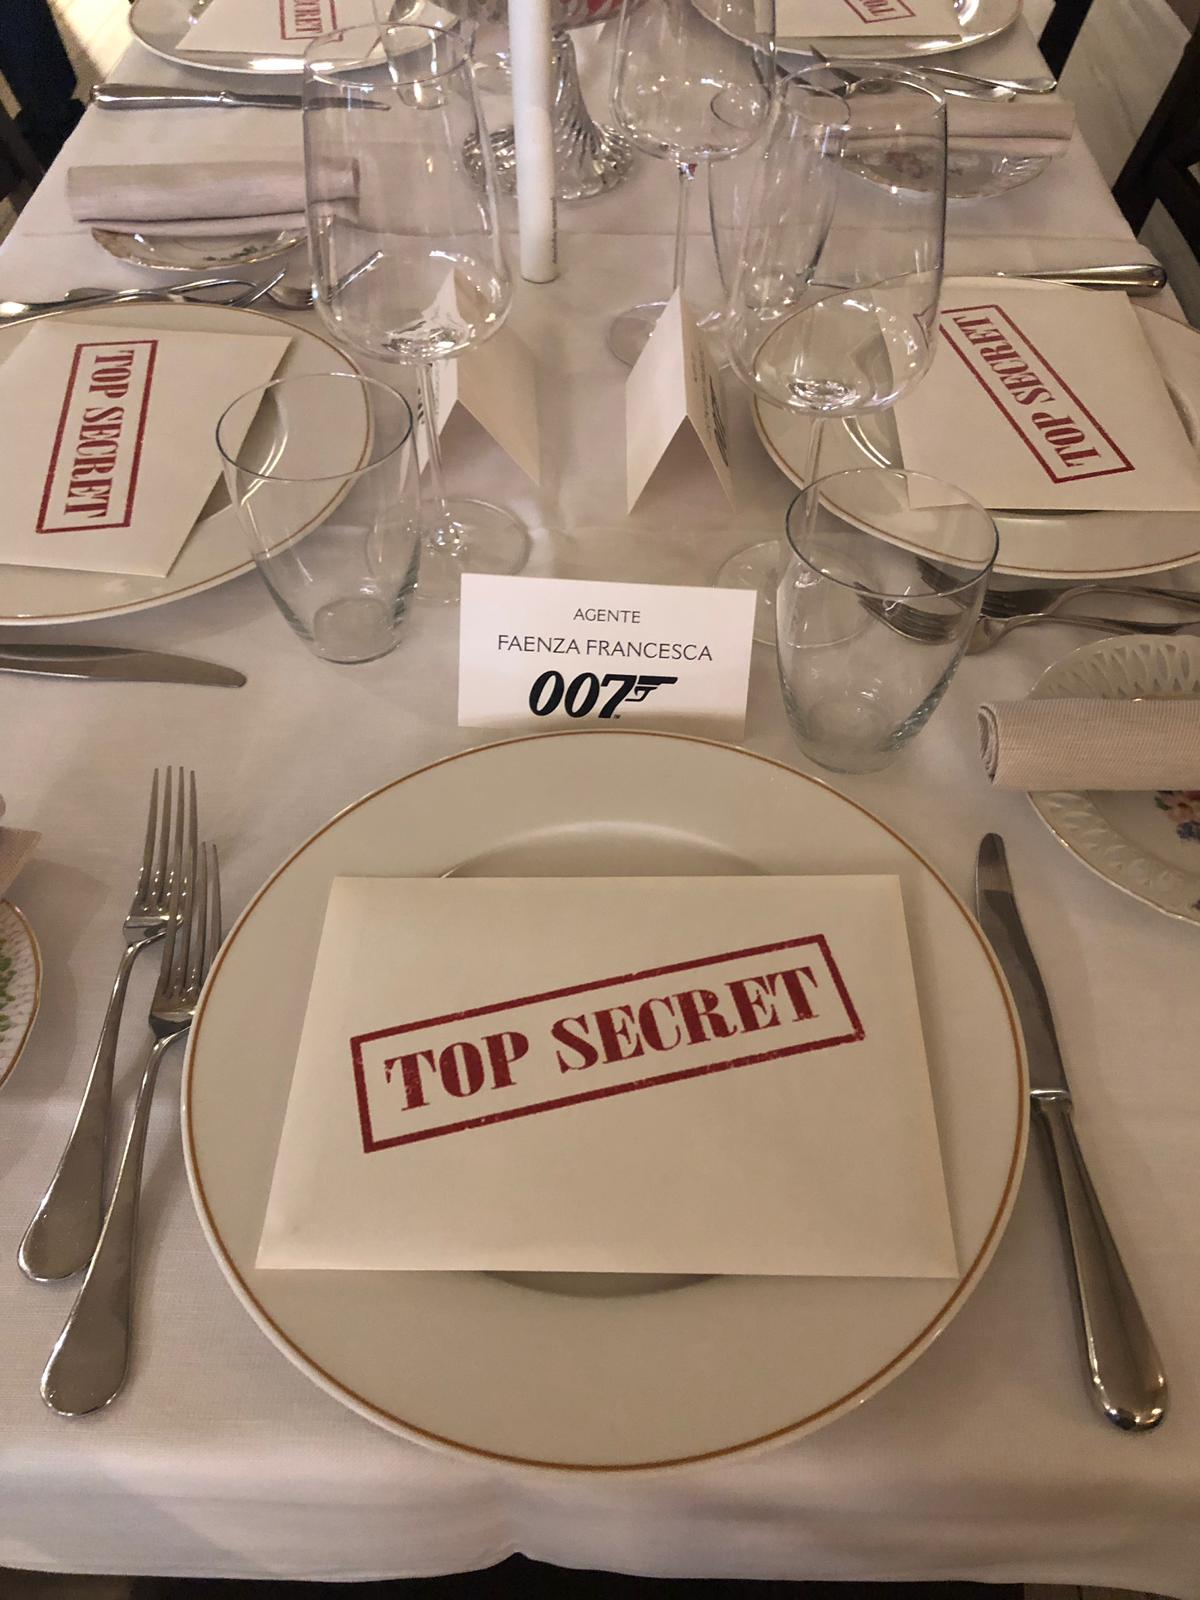 James Bond Damedeo - Mise en place